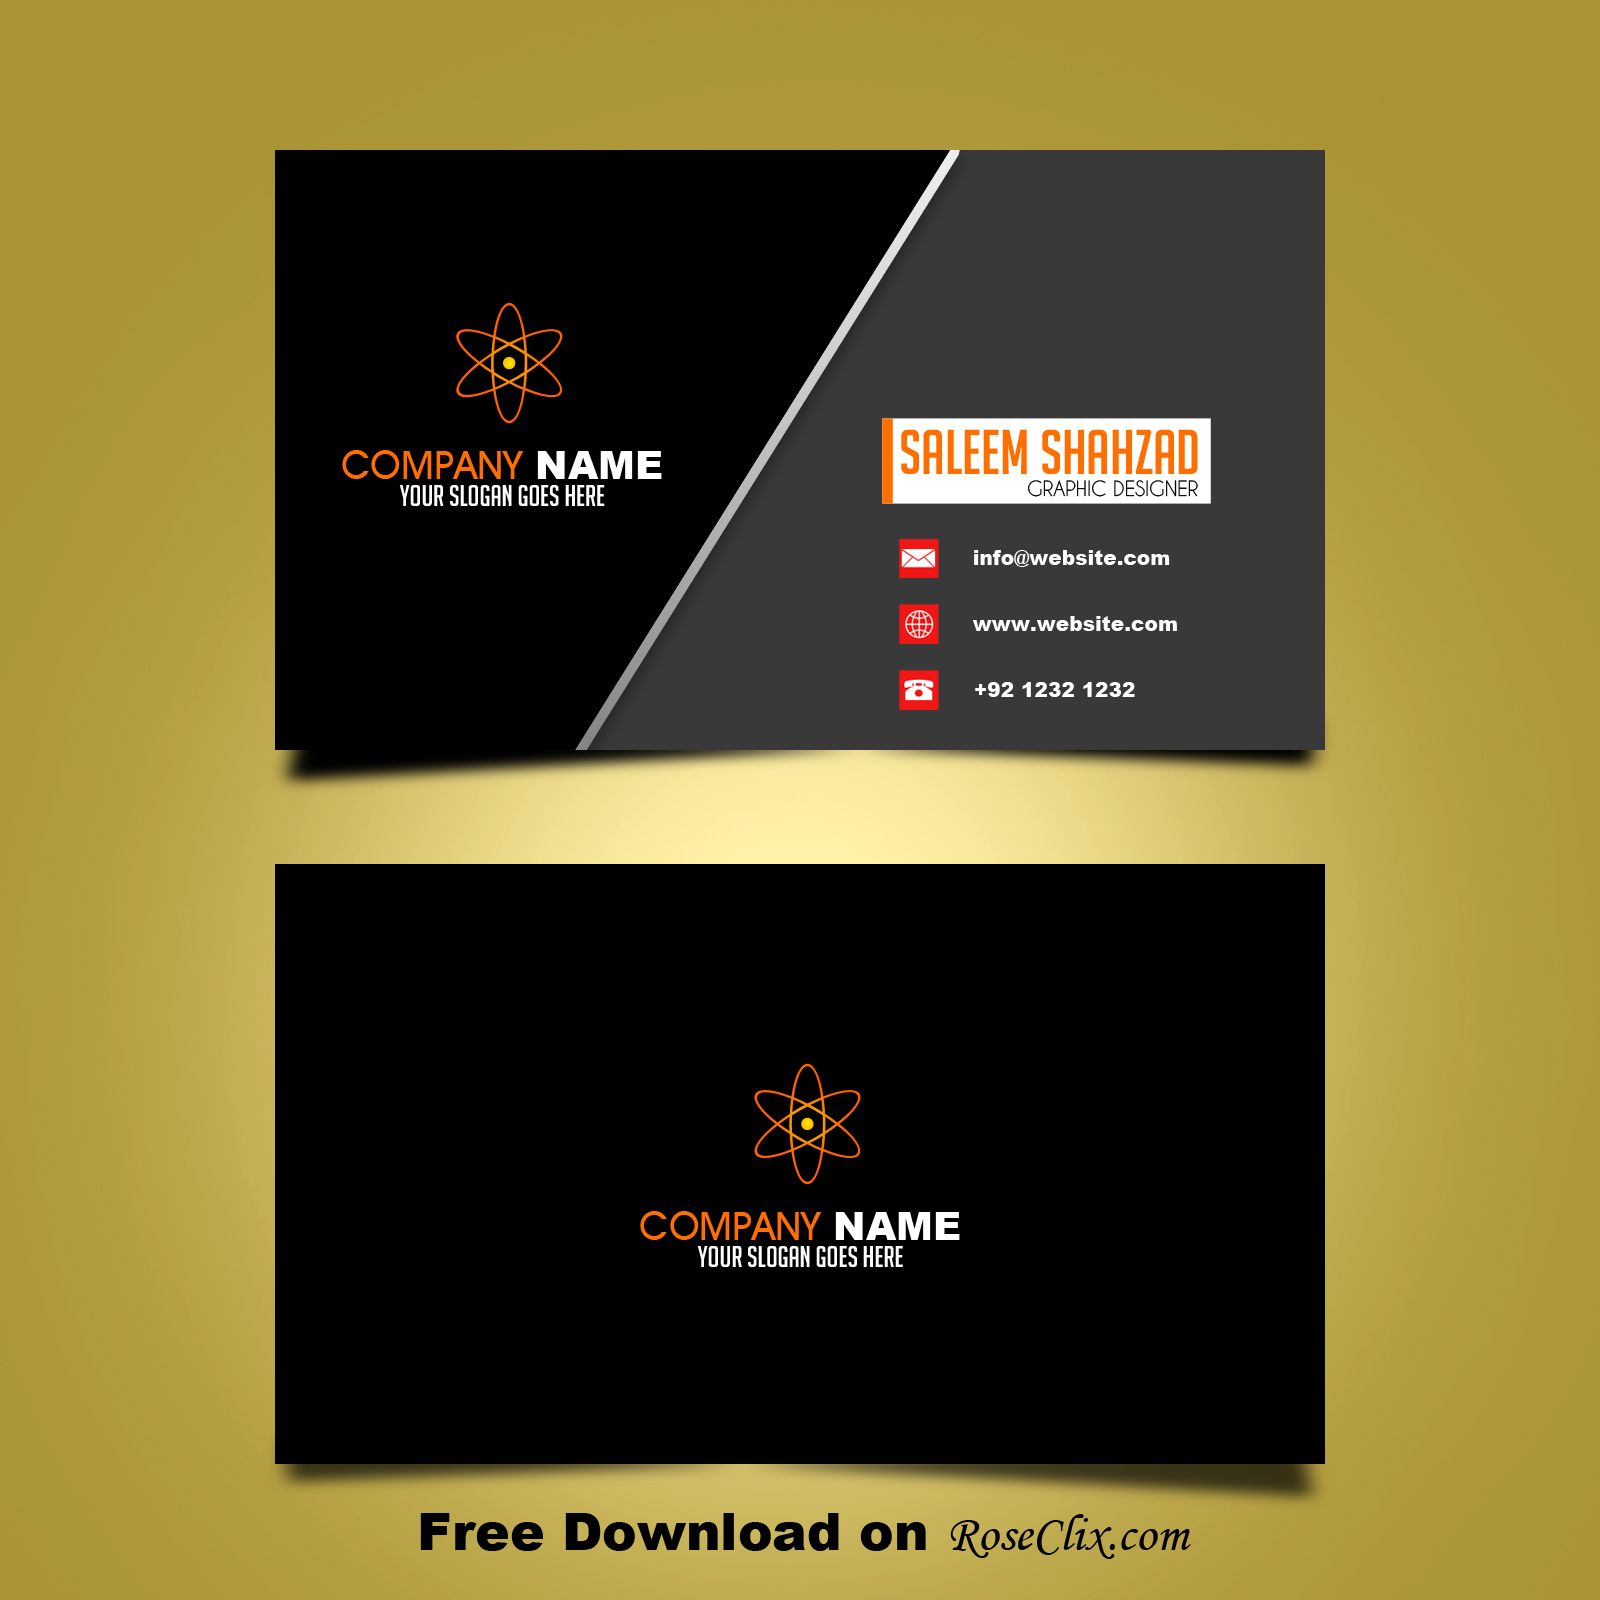 Free business card design template vector shapes psd